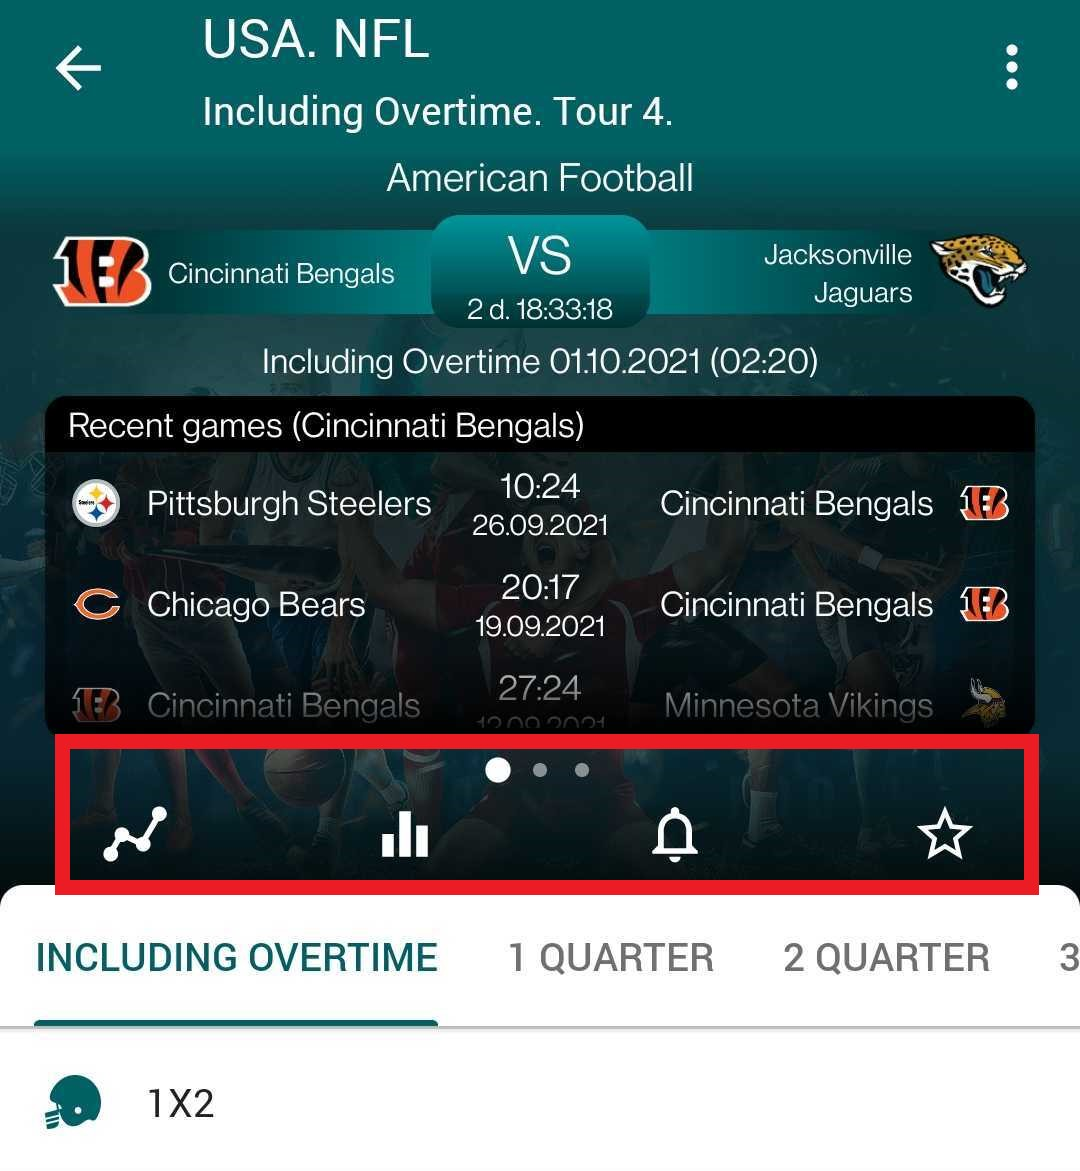 22bet user friendly features on mobile app